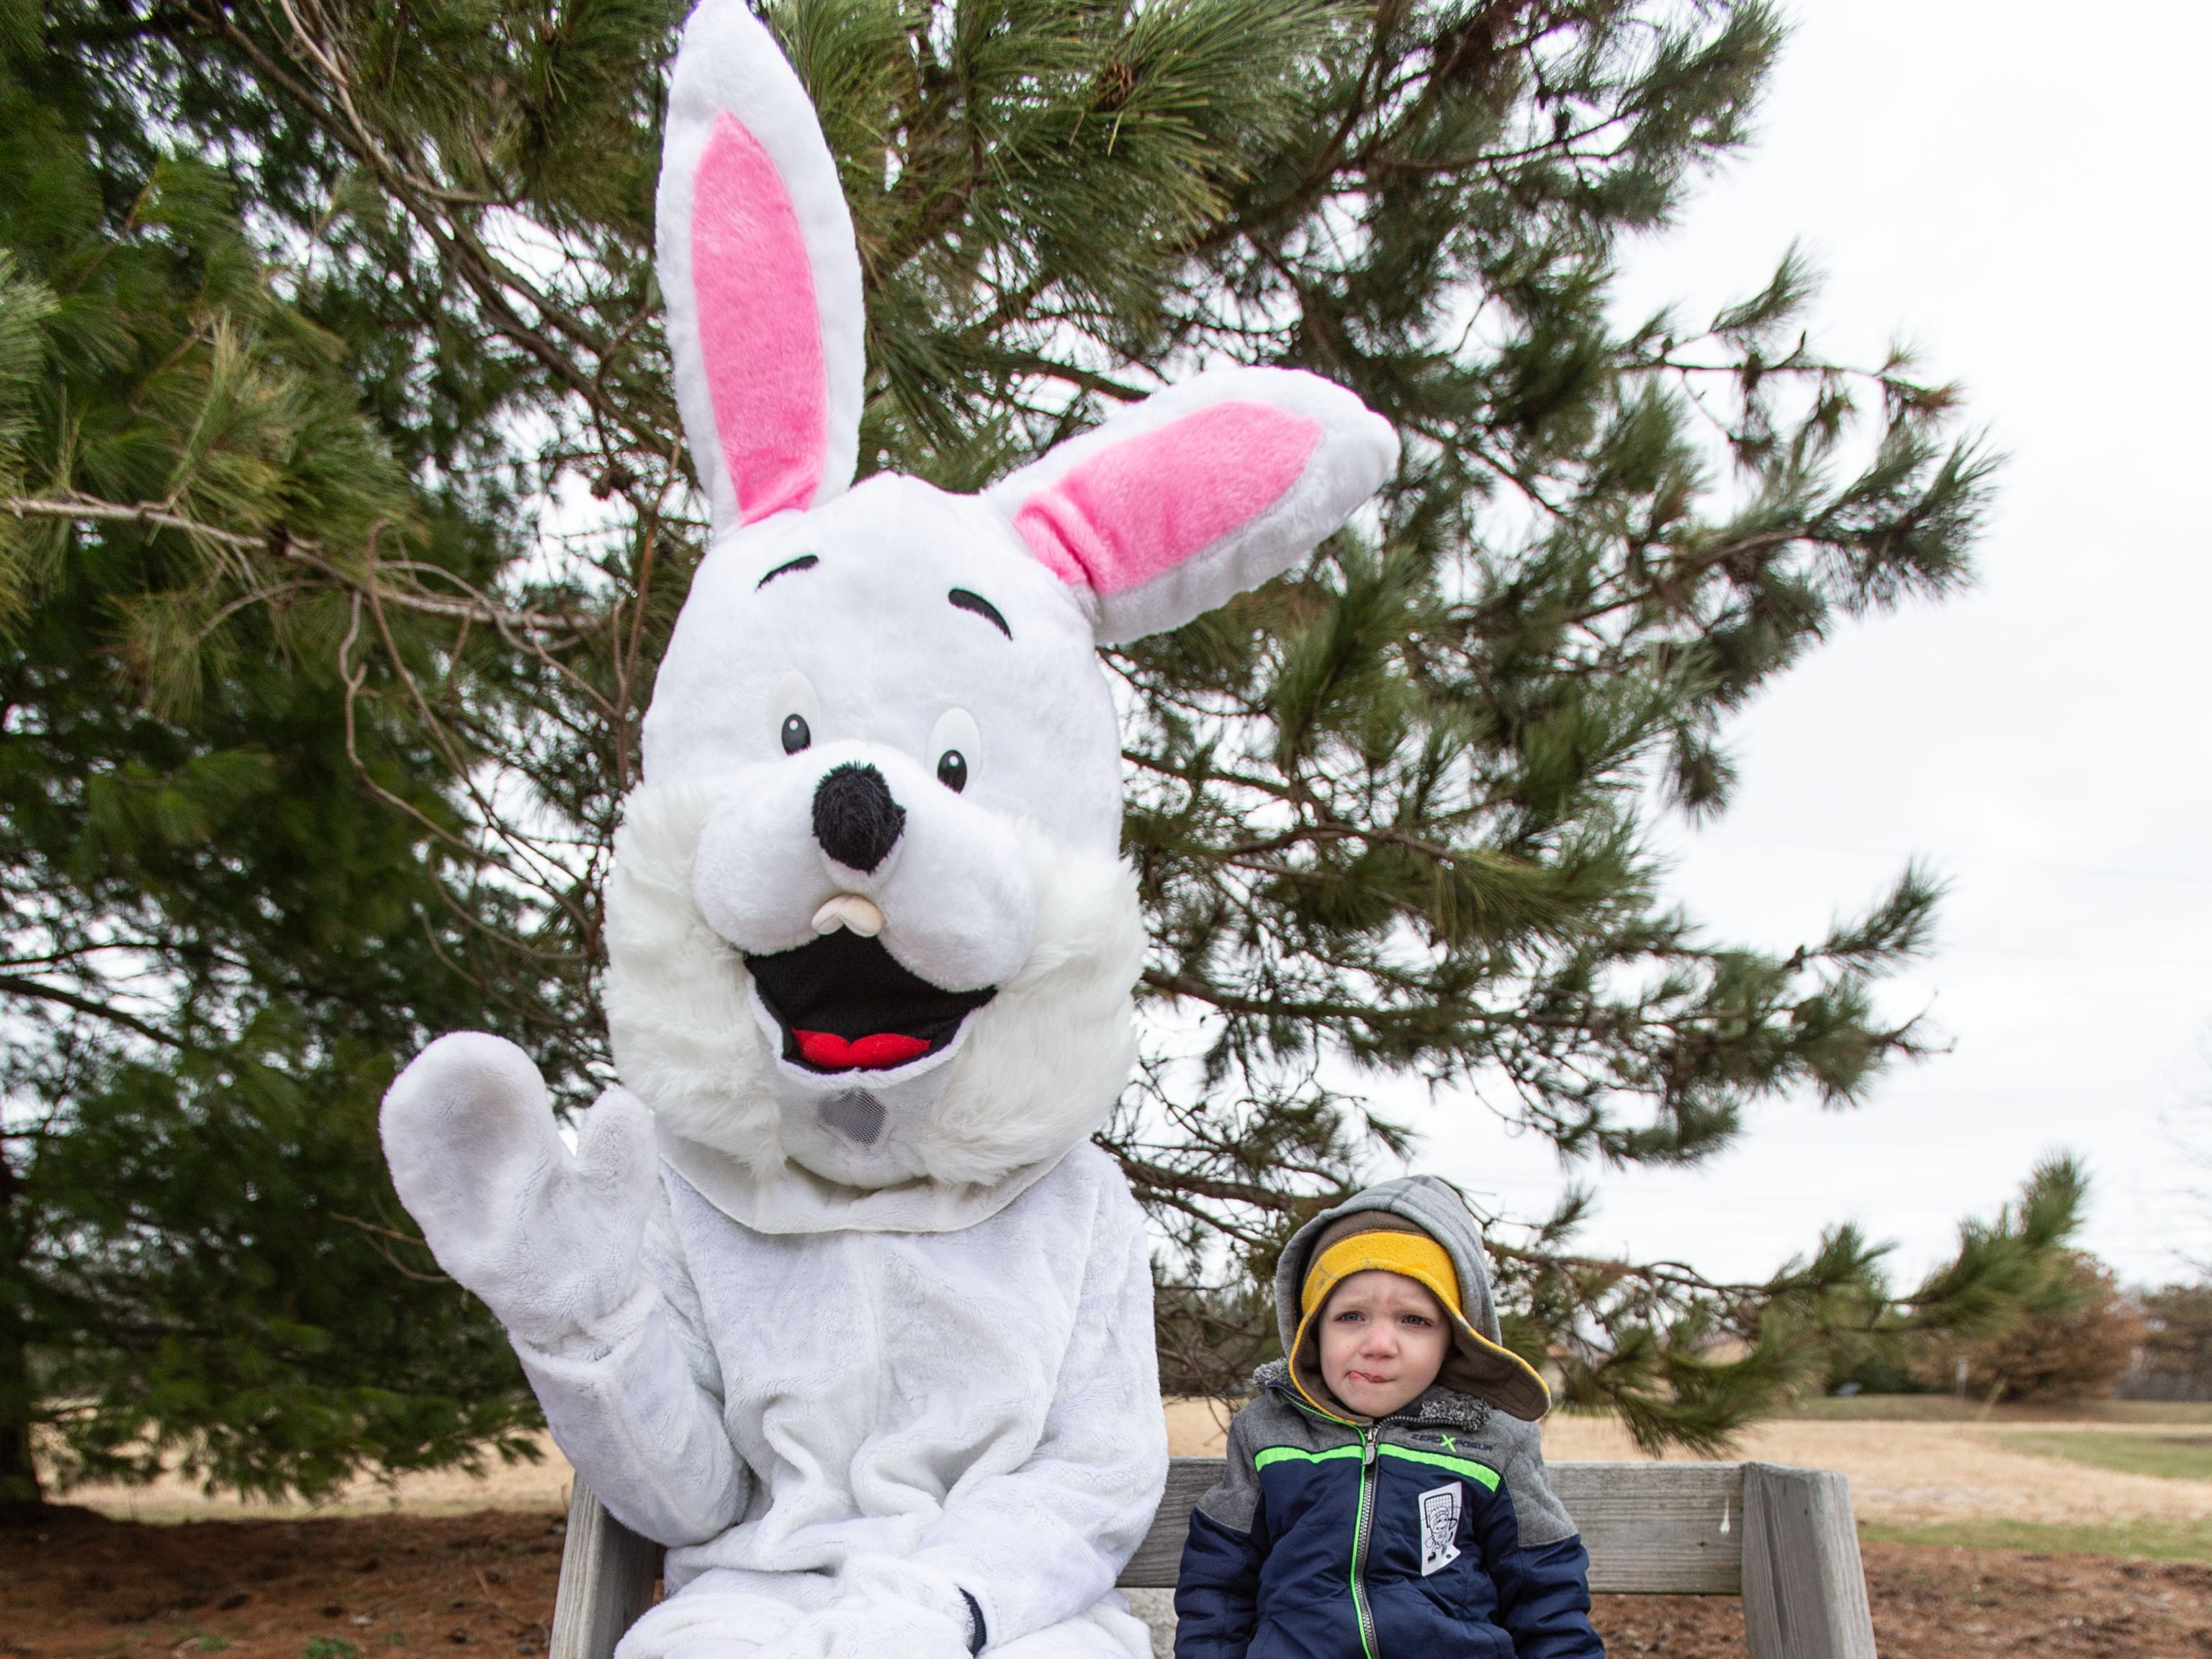 Three-year-old Deaglan Beier of Sussex sits for a photo with the Easter Bunny during the annual Easter Extravaganza egg hunt in Lisbon Community Park on Saturday, April 13, 2019. Sponsored by the Lisbon Park Department, the hunt features treats from area businesses and organizations, pictures with the Easter Bunny, local emergency response vehicles and more.